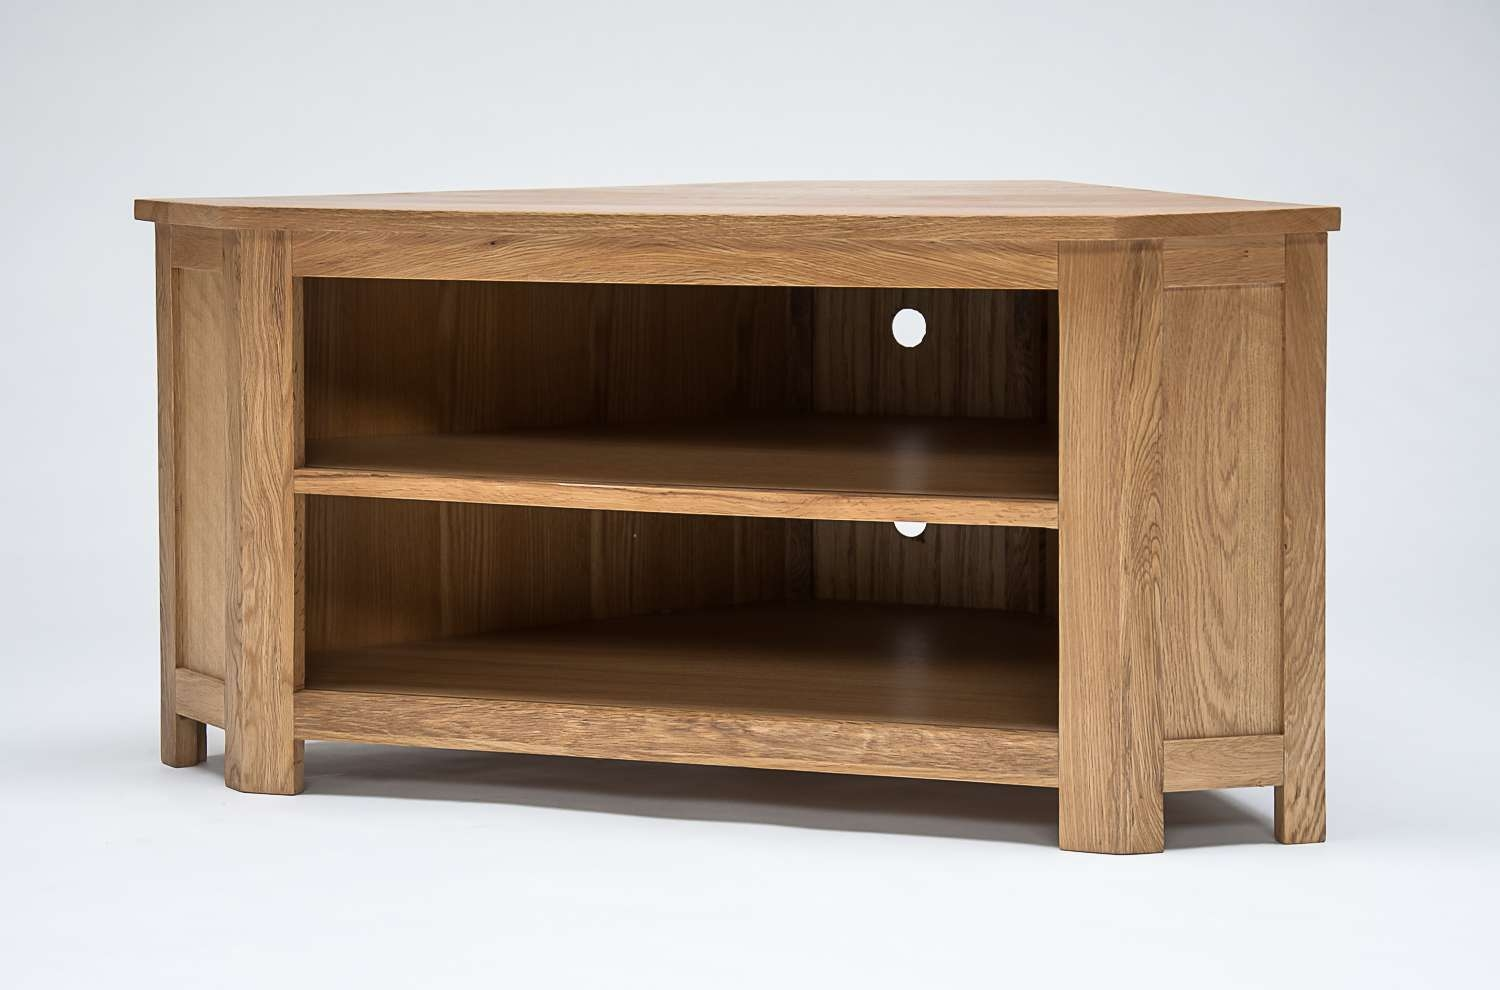 Lansdown Oak Low Corner Tv Cabinet | Oak Furniture Solutions With Regard To Low Corner Tv Cabinets (View 11 of 20)